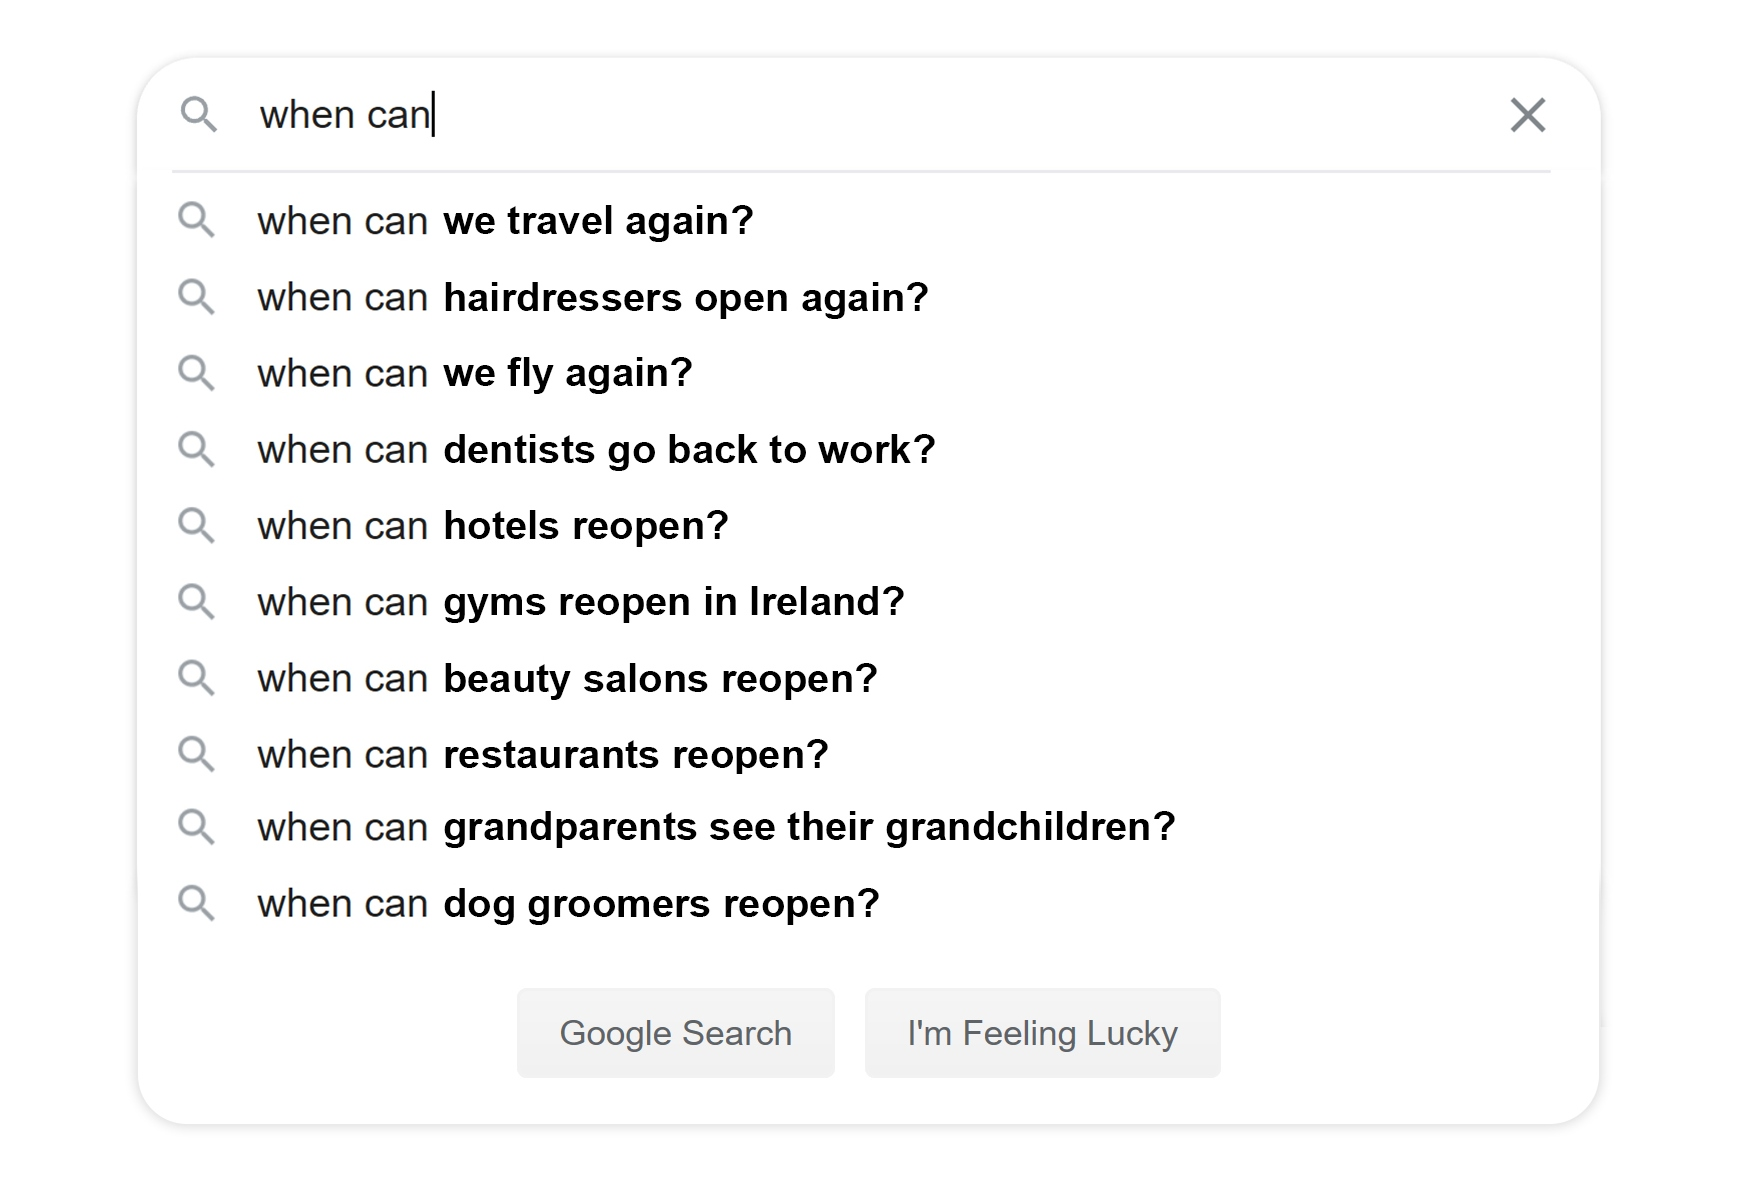 Google search showing when we can